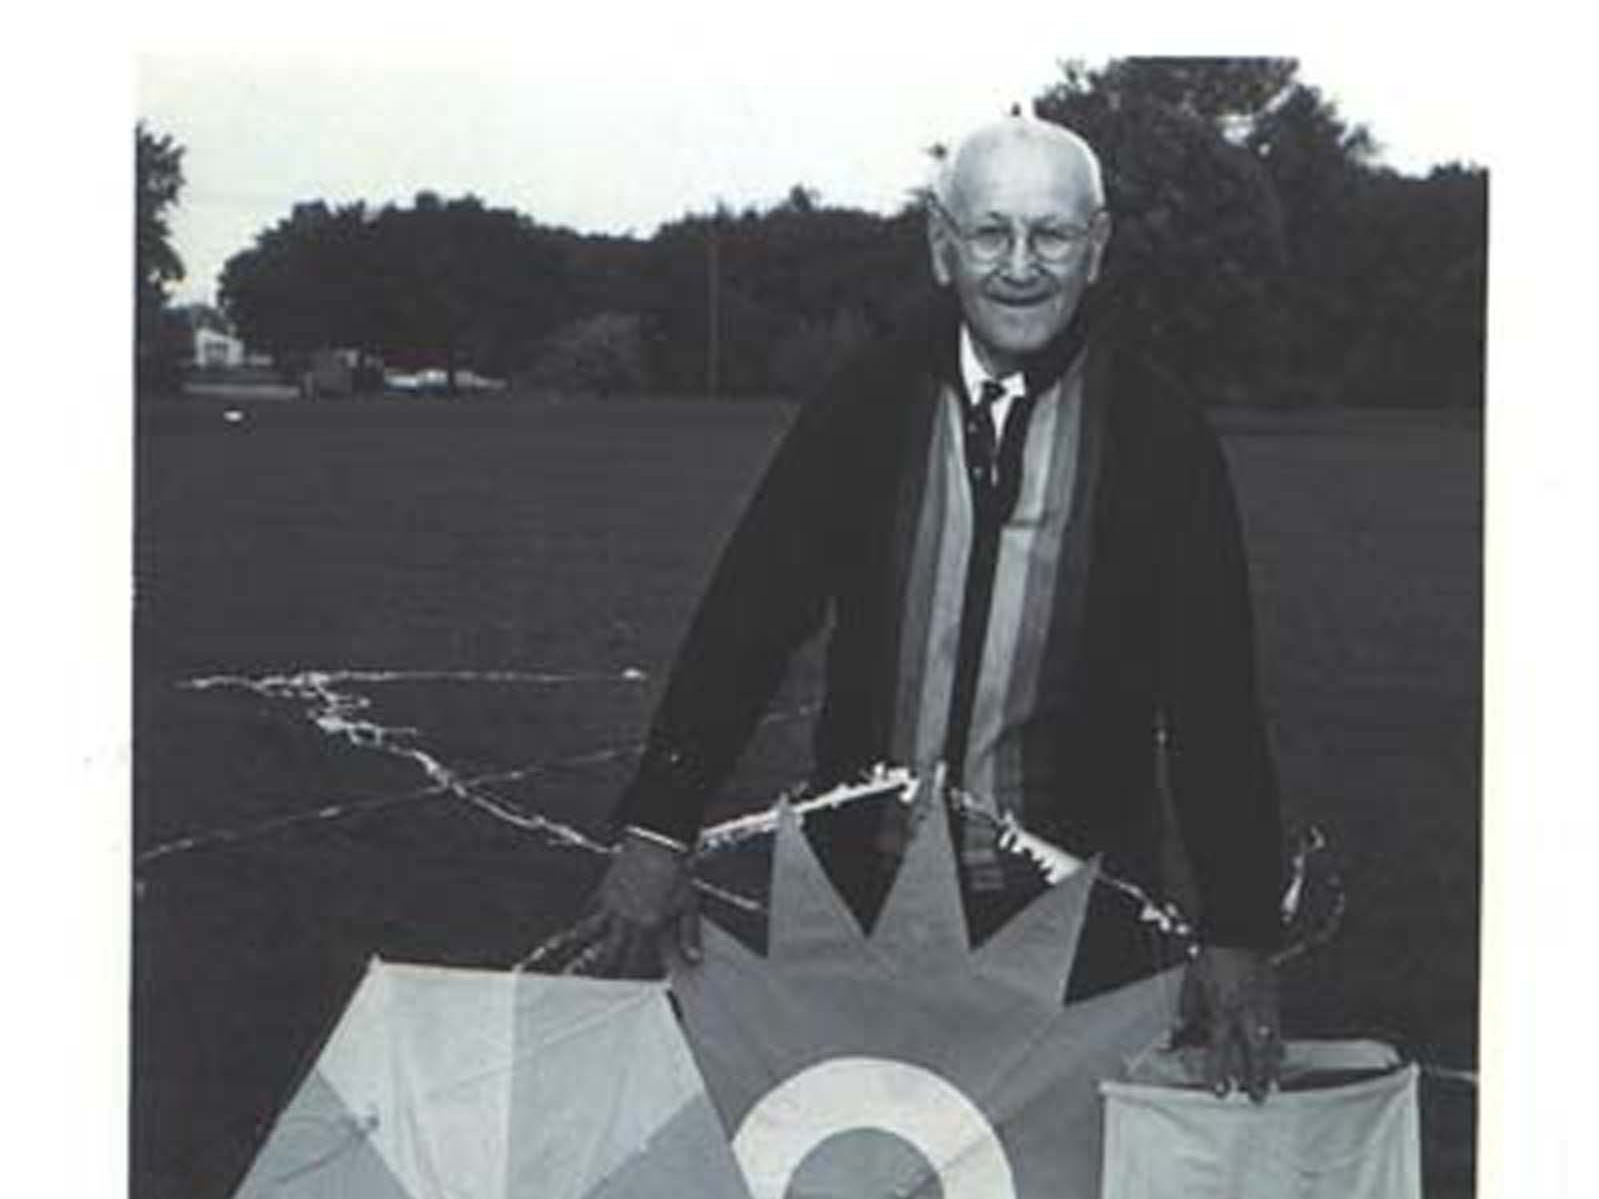 Frank Mots was a Milwaukee kite enthusiast who lives on in kite-flyers' memories through the annual festival.